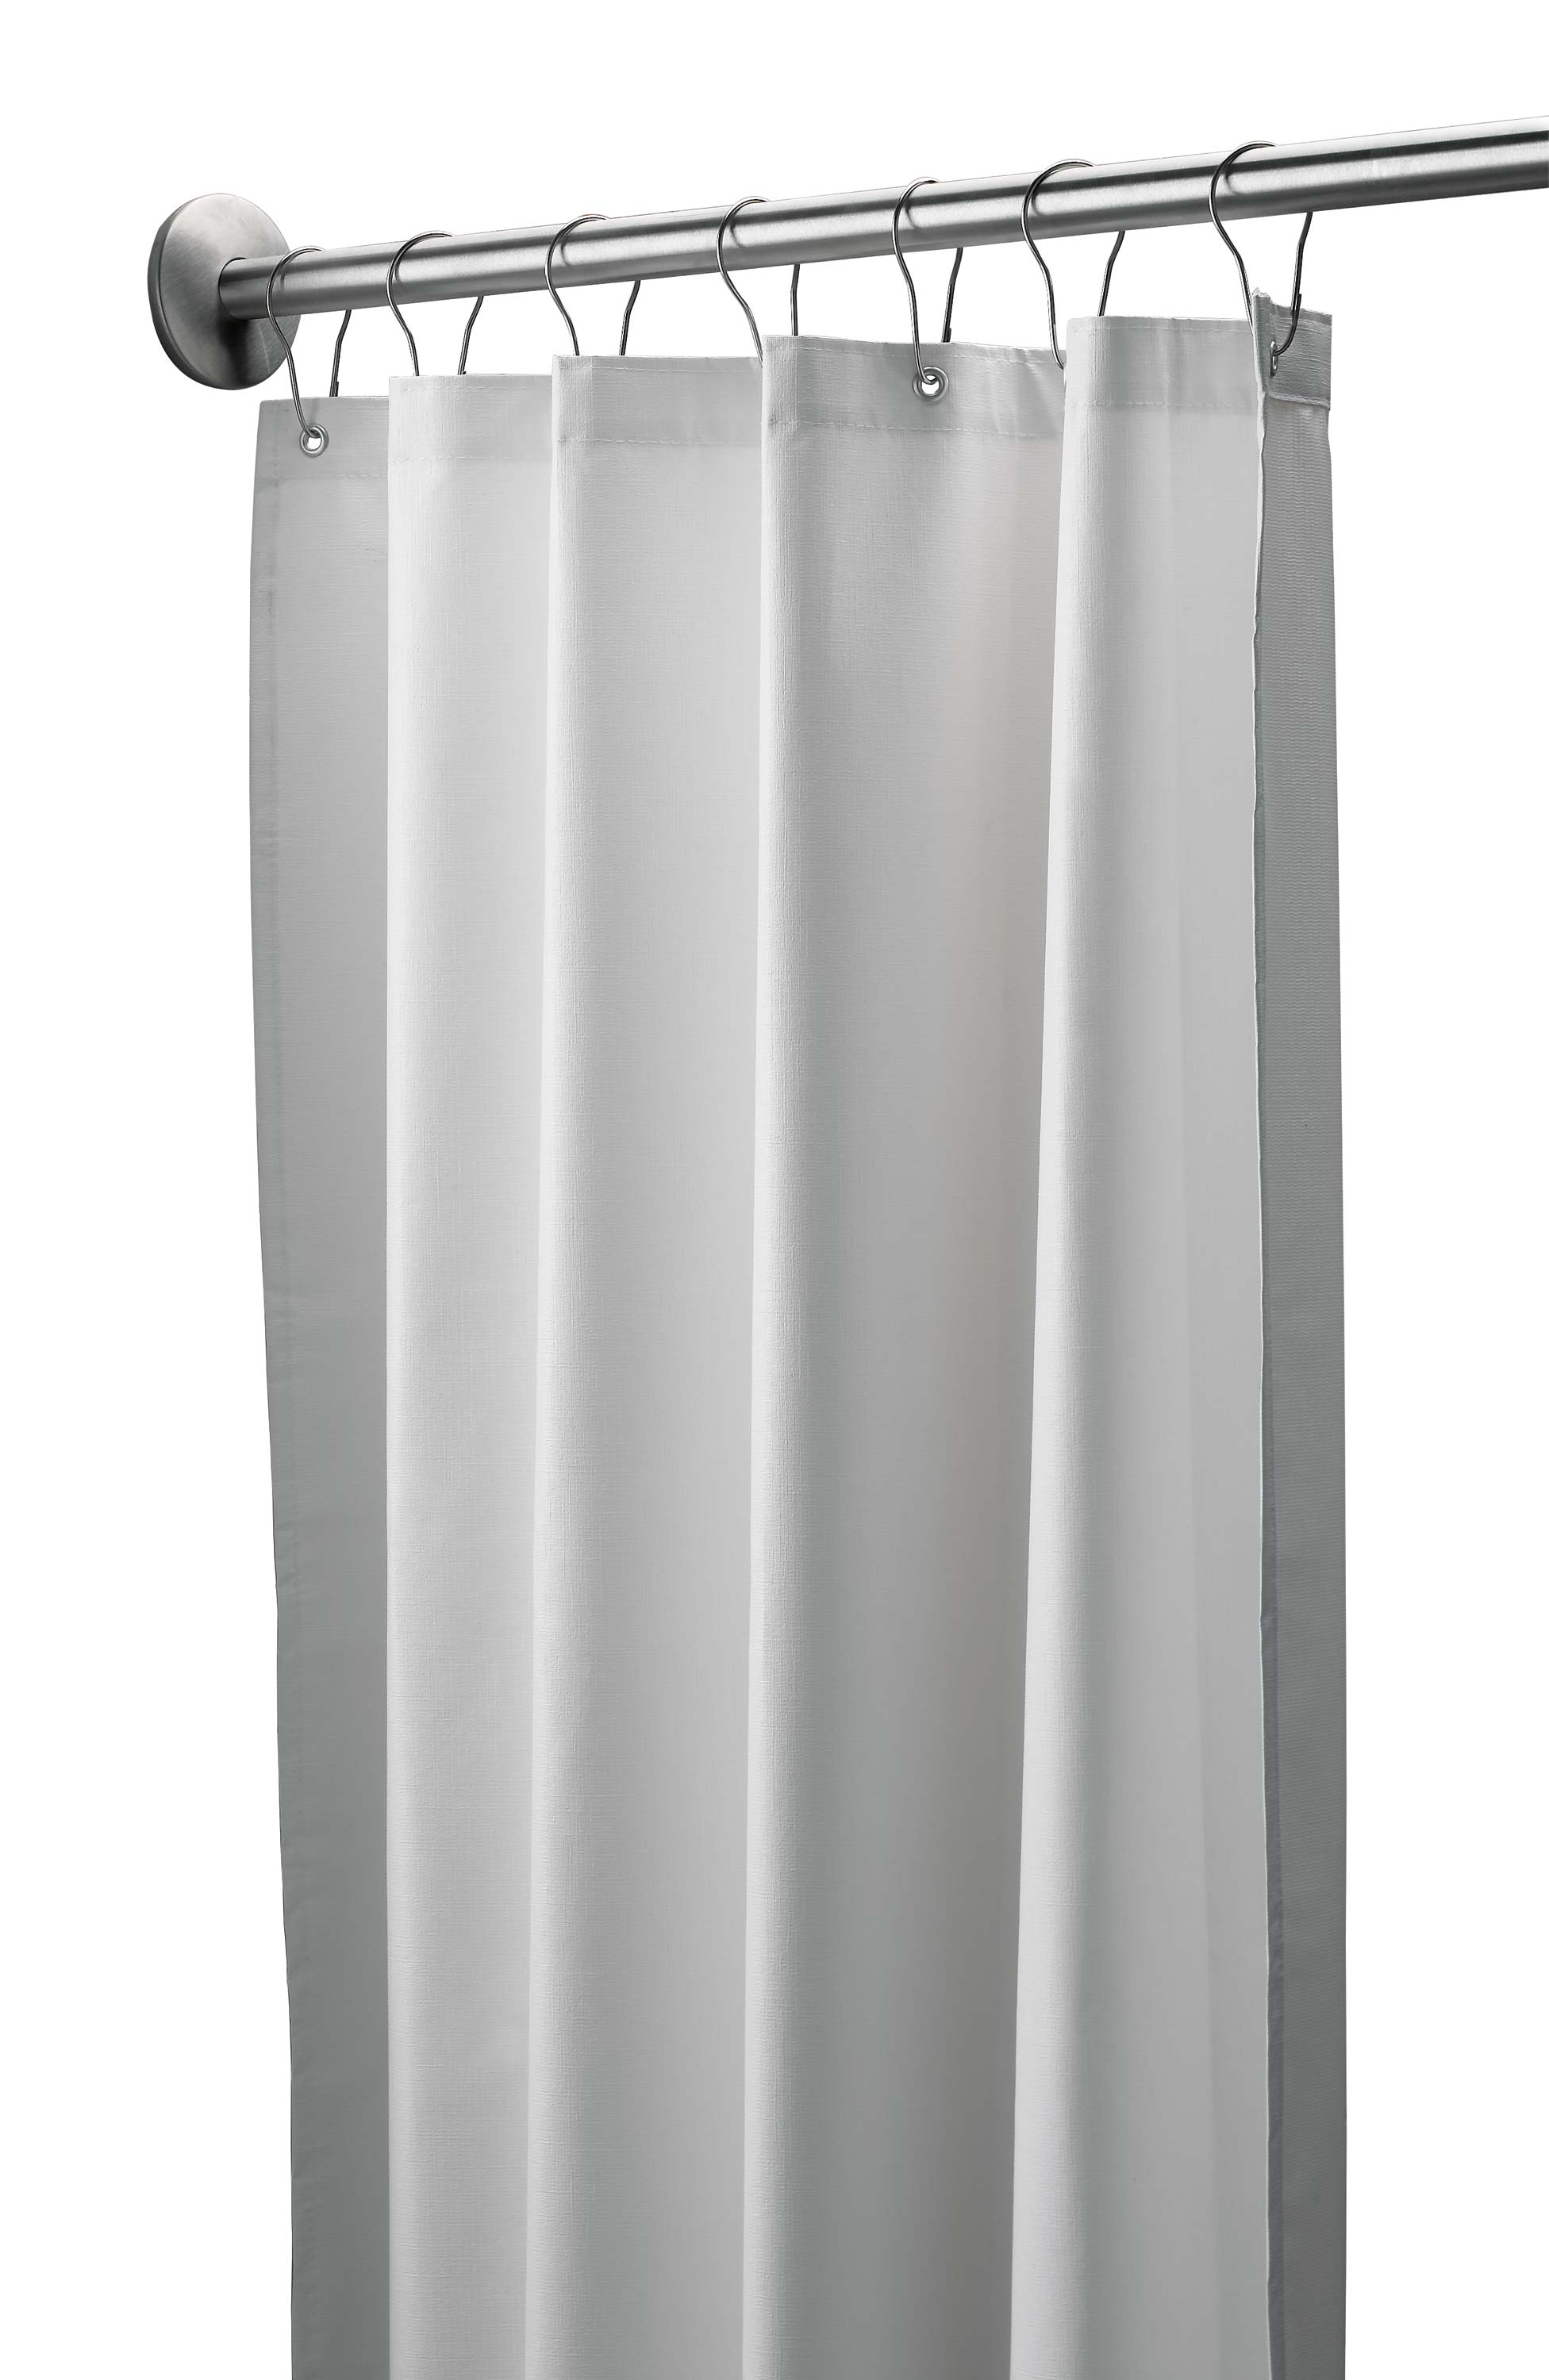 Antimicrobial Vinyl Shower Curtain